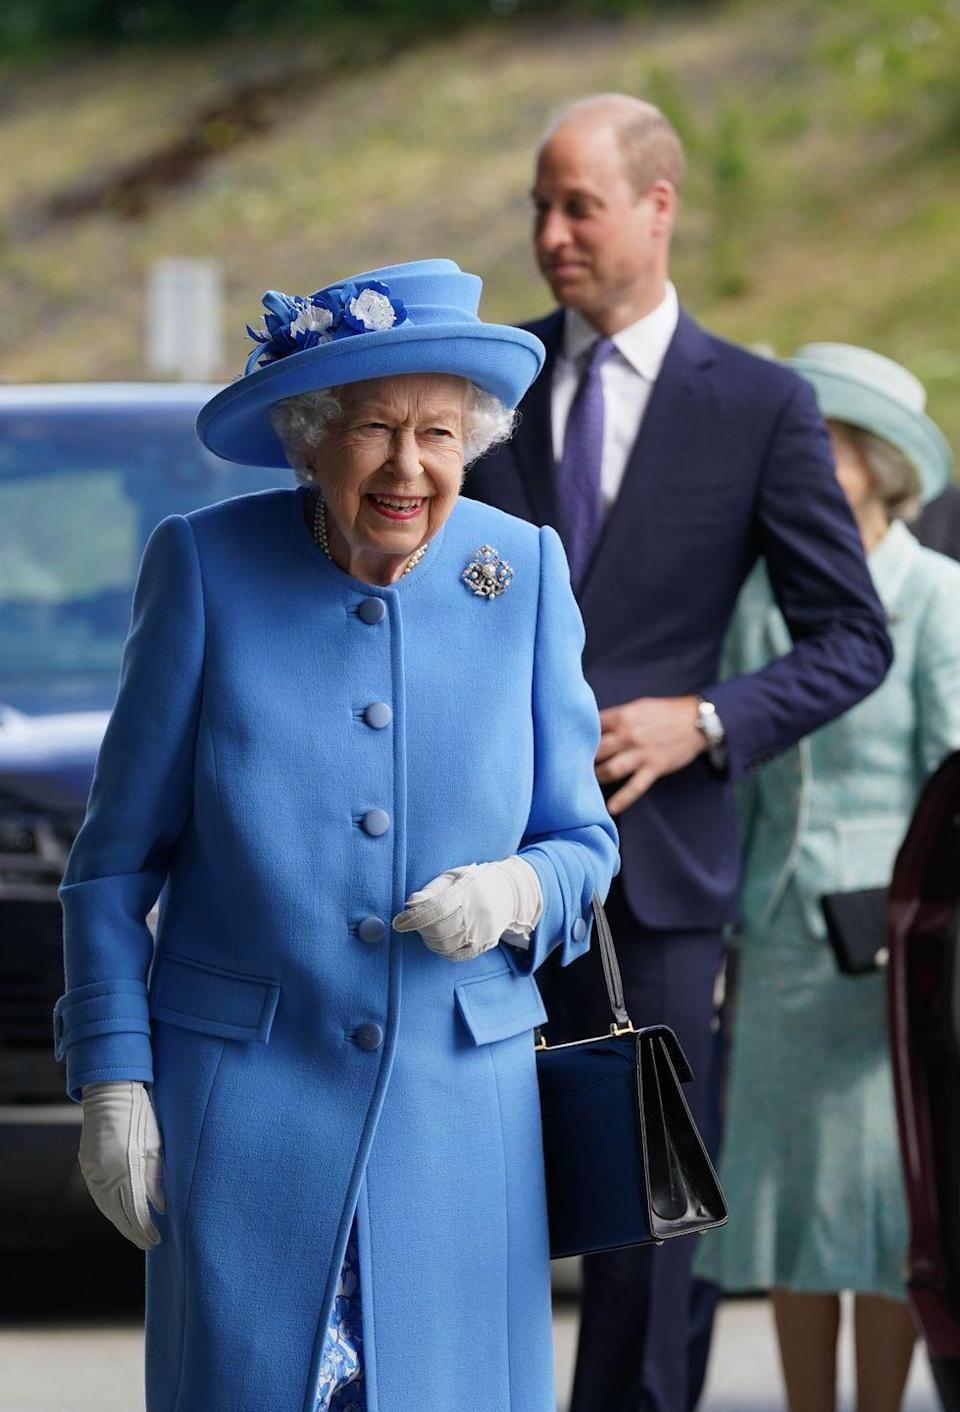 <p>The queen and Prince William arrive at AG Barr's factory, the manufacturing center of the Irn-Bru drink, in Cumbernauld, Scotland, on June 28, 2021.</p>